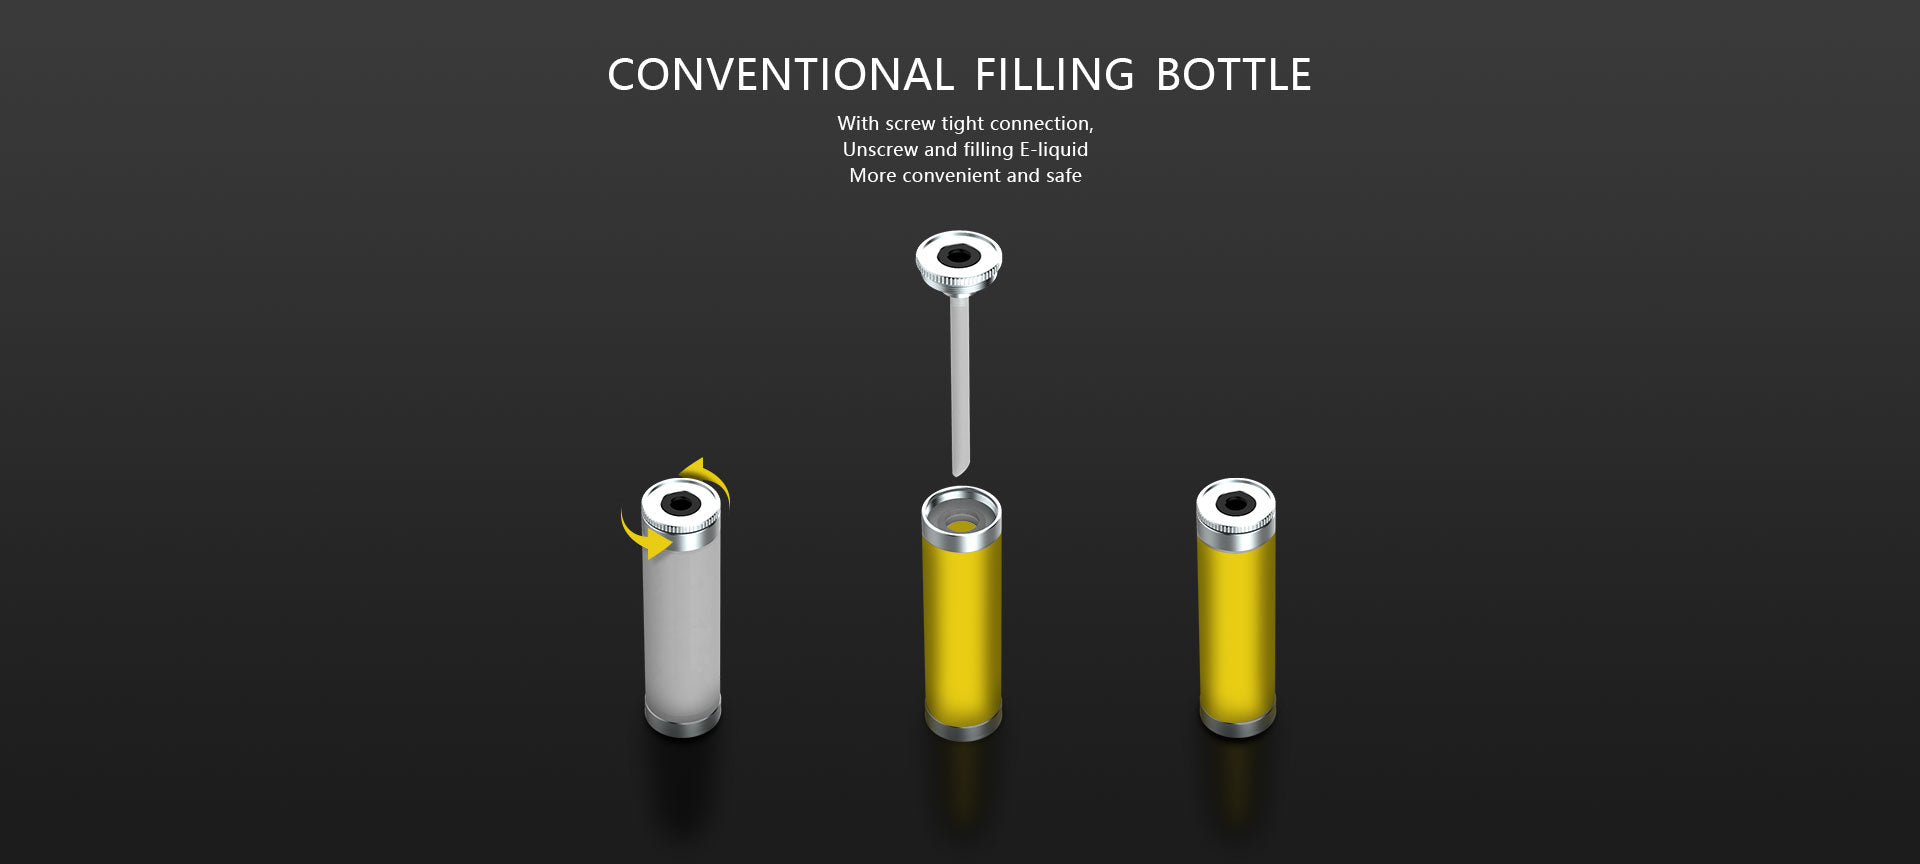 Conventional filling bottle  With screw tight connection, Unscrew and filling E-liquid More convenient and safe